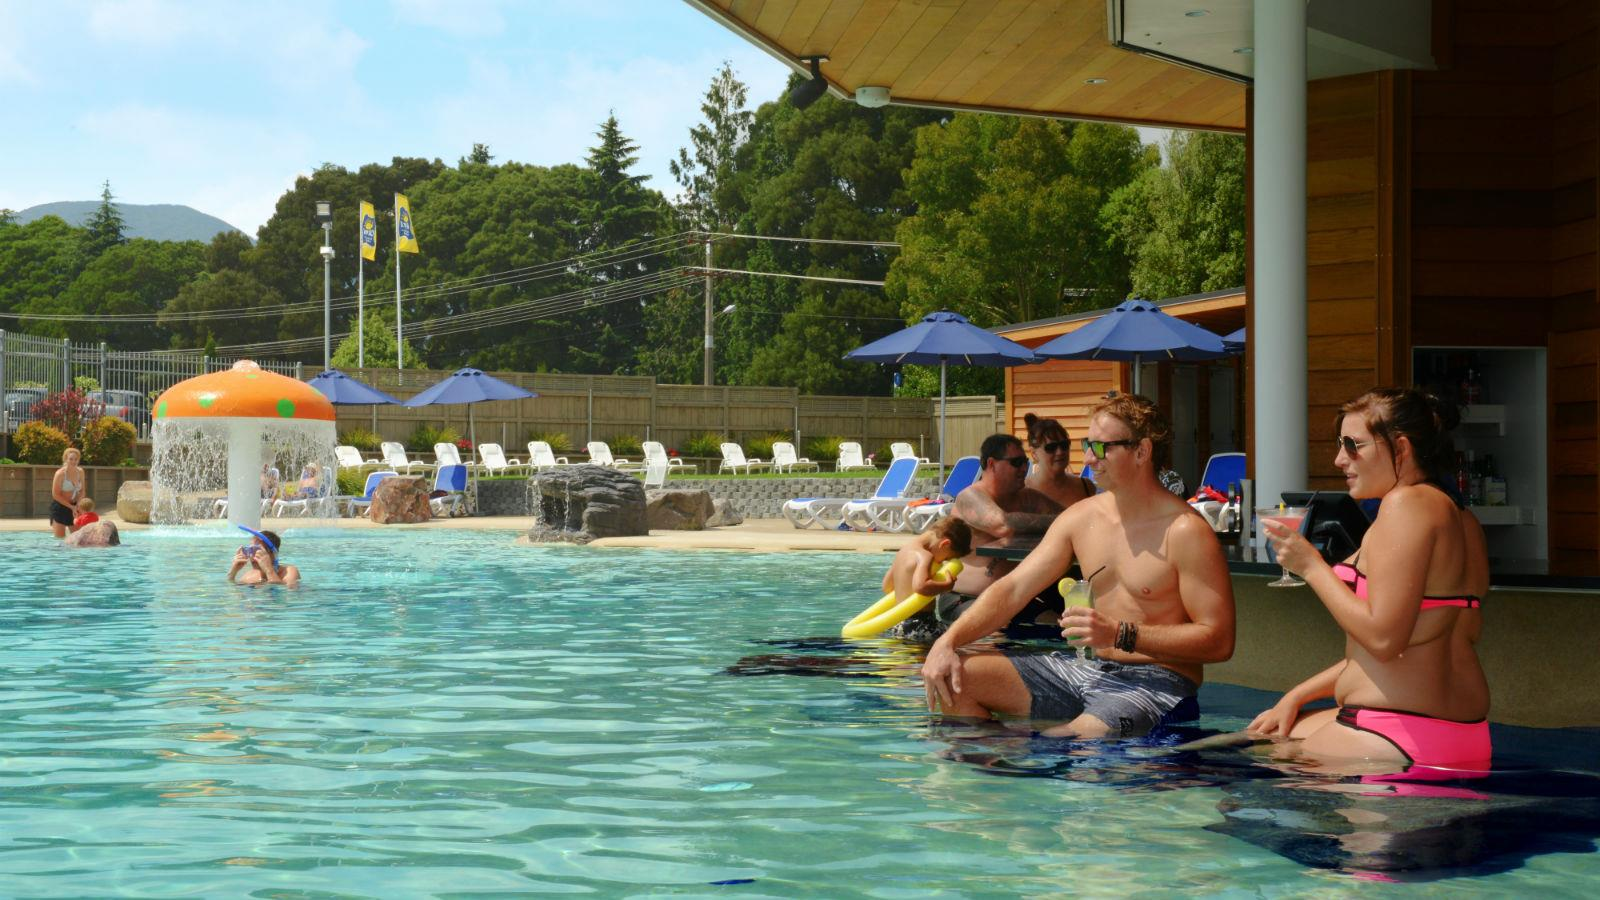 Take a dip!